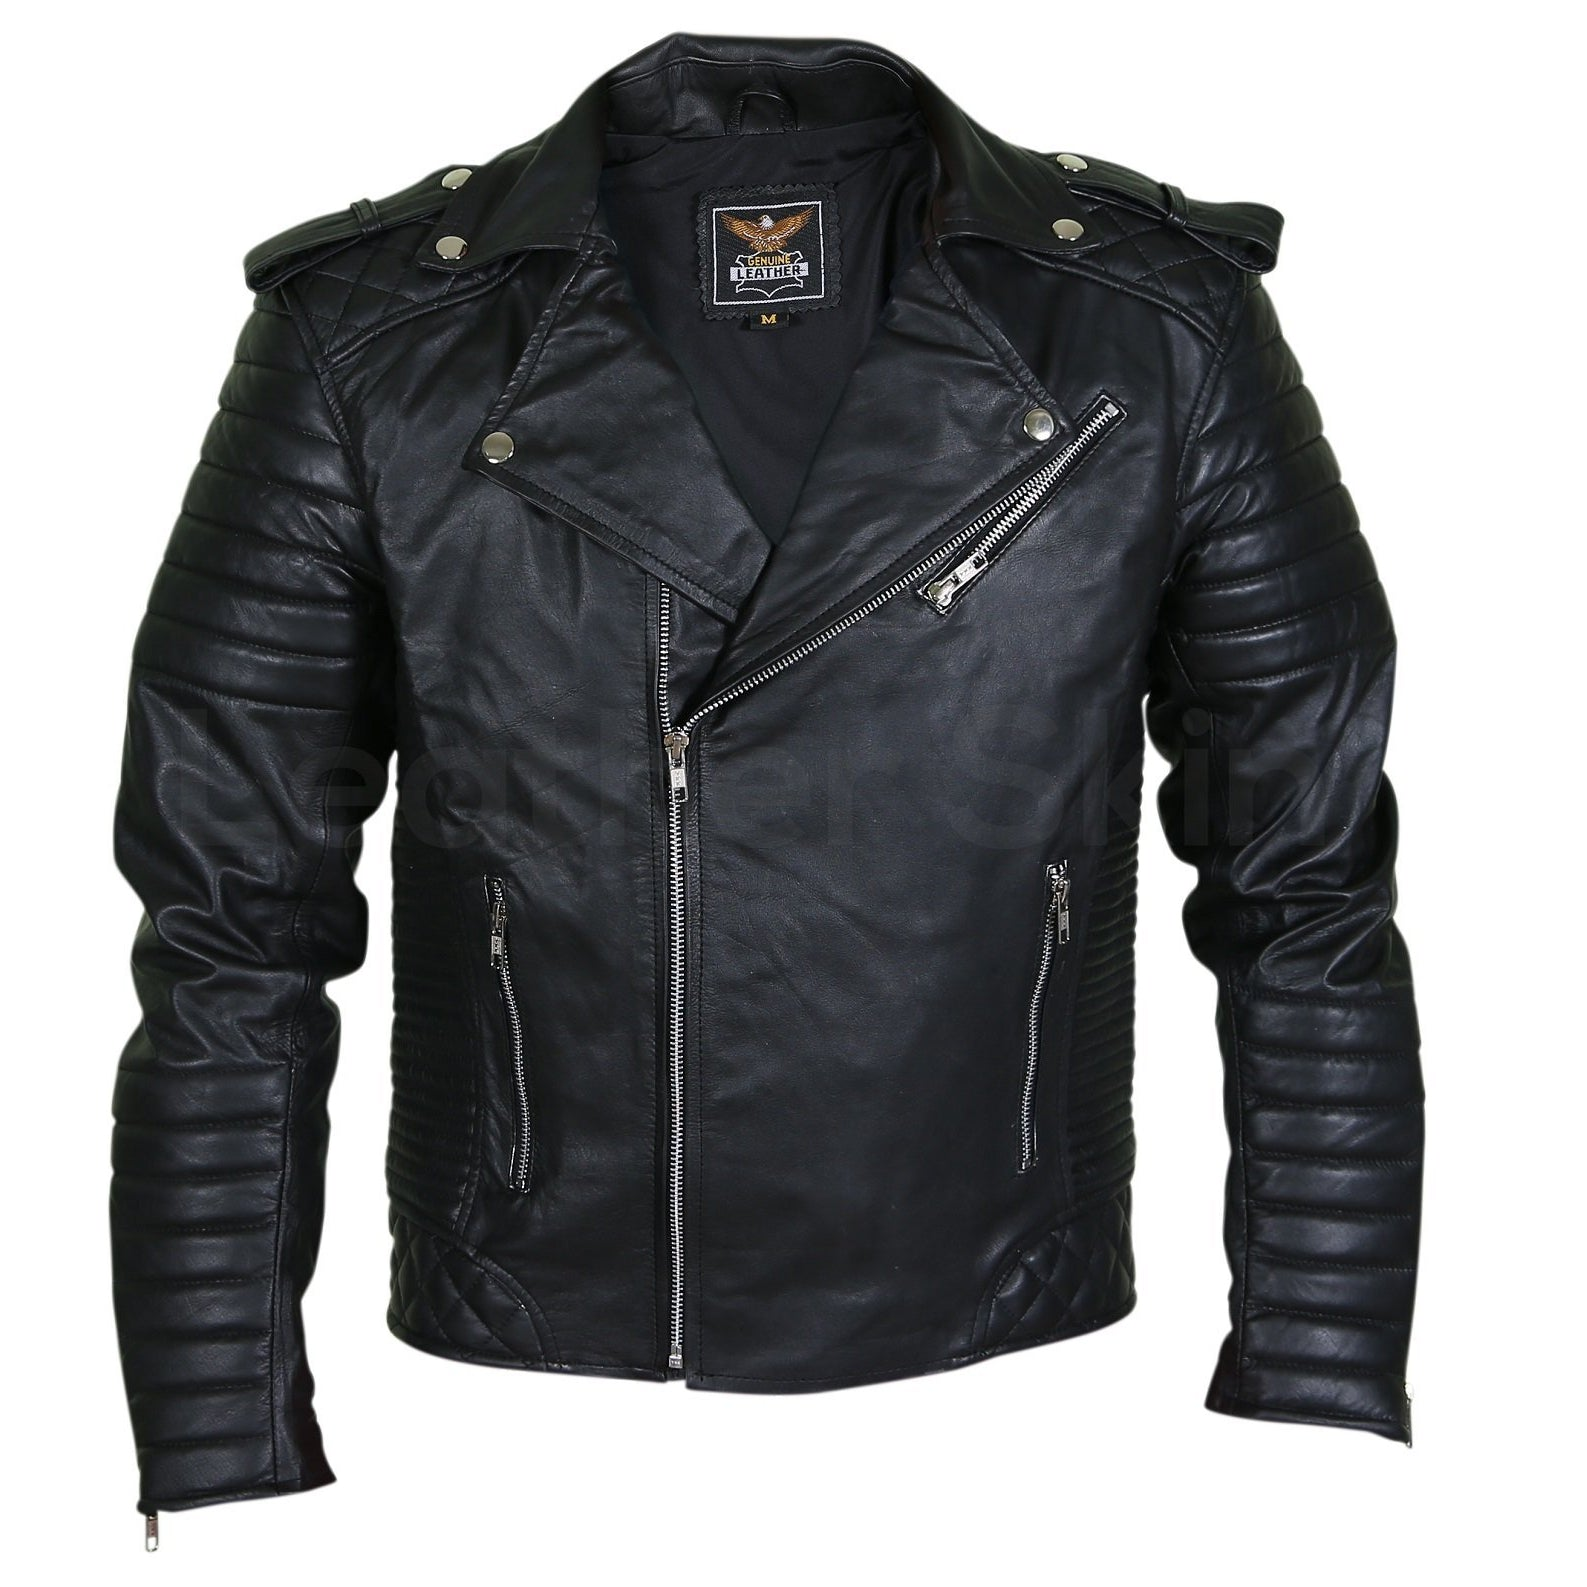 c83bb6f68 Buy Motorcycle Leather Jackets Online | Buy Best Jackets Online ...